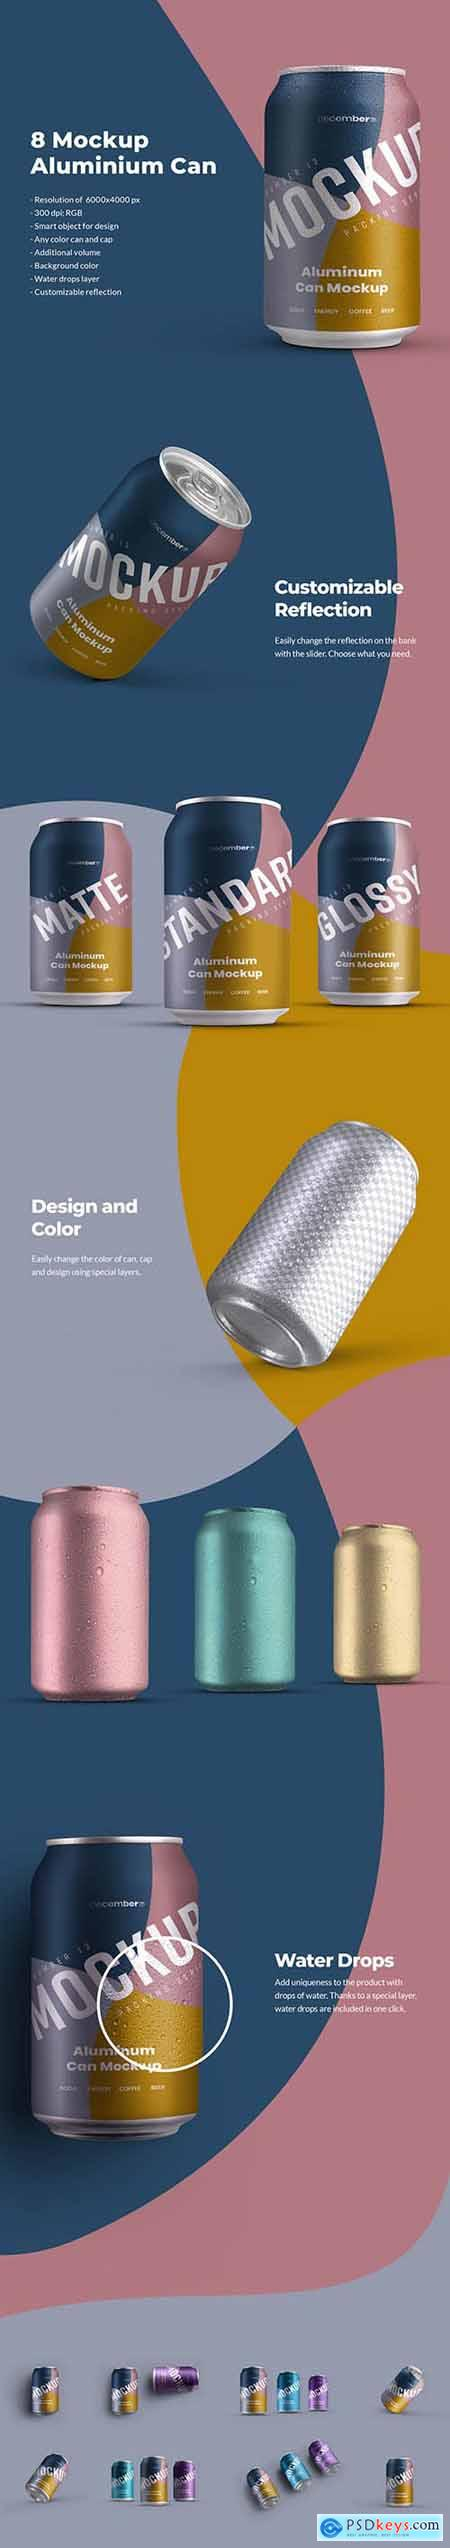 8 Mockup Aluminium Can 330 ml With Water drops